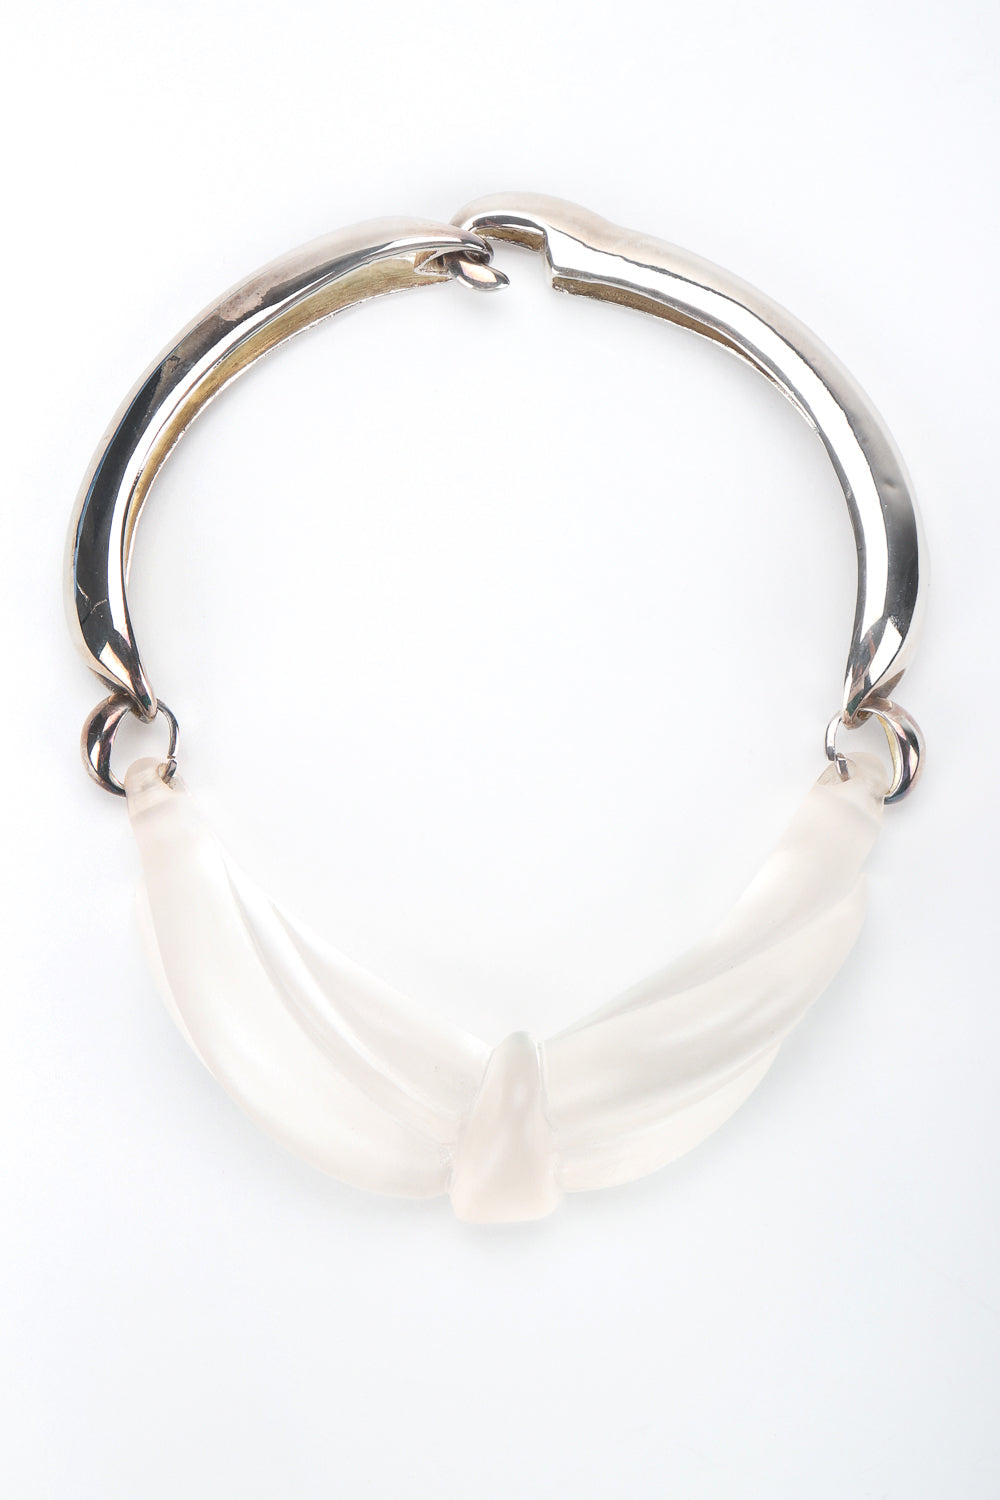 Recess Designer Consignment Vintage Frosted Sculpted Lucite Knot Collar Necklace Los Angeles Resale